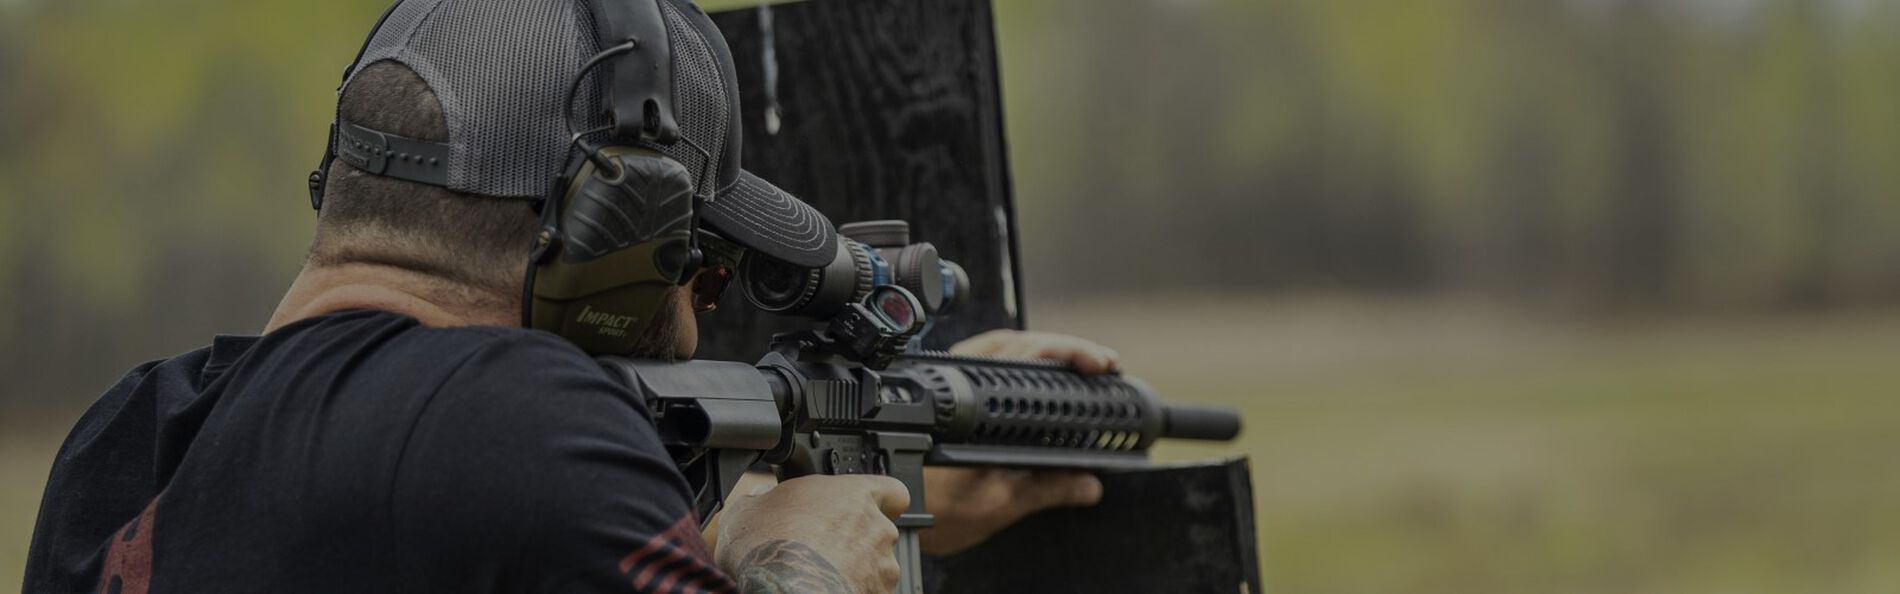 man aiming a rifle that is rested on a wood support